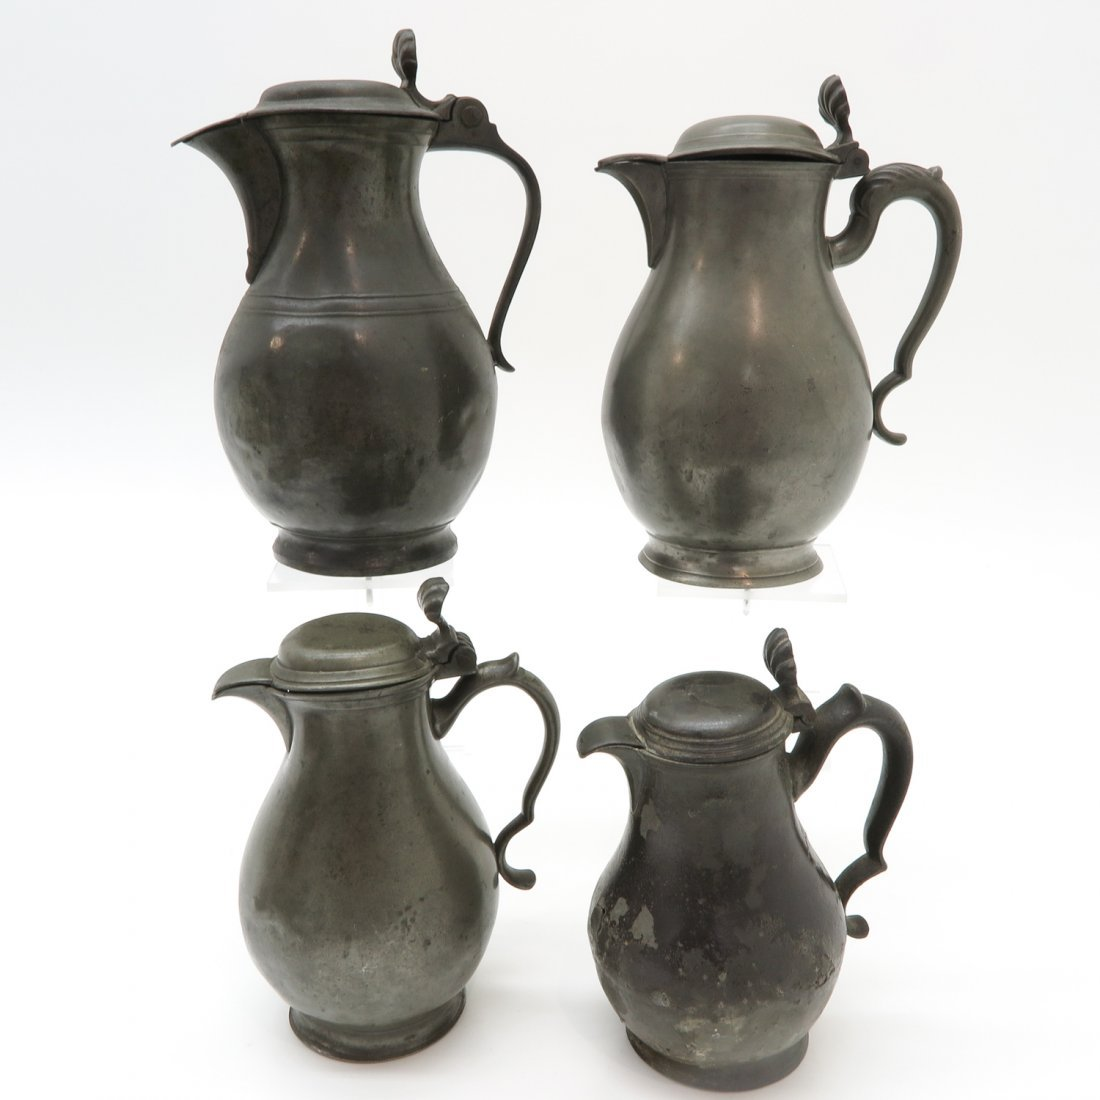 Lot of 18th / 19th Century Pewter Items